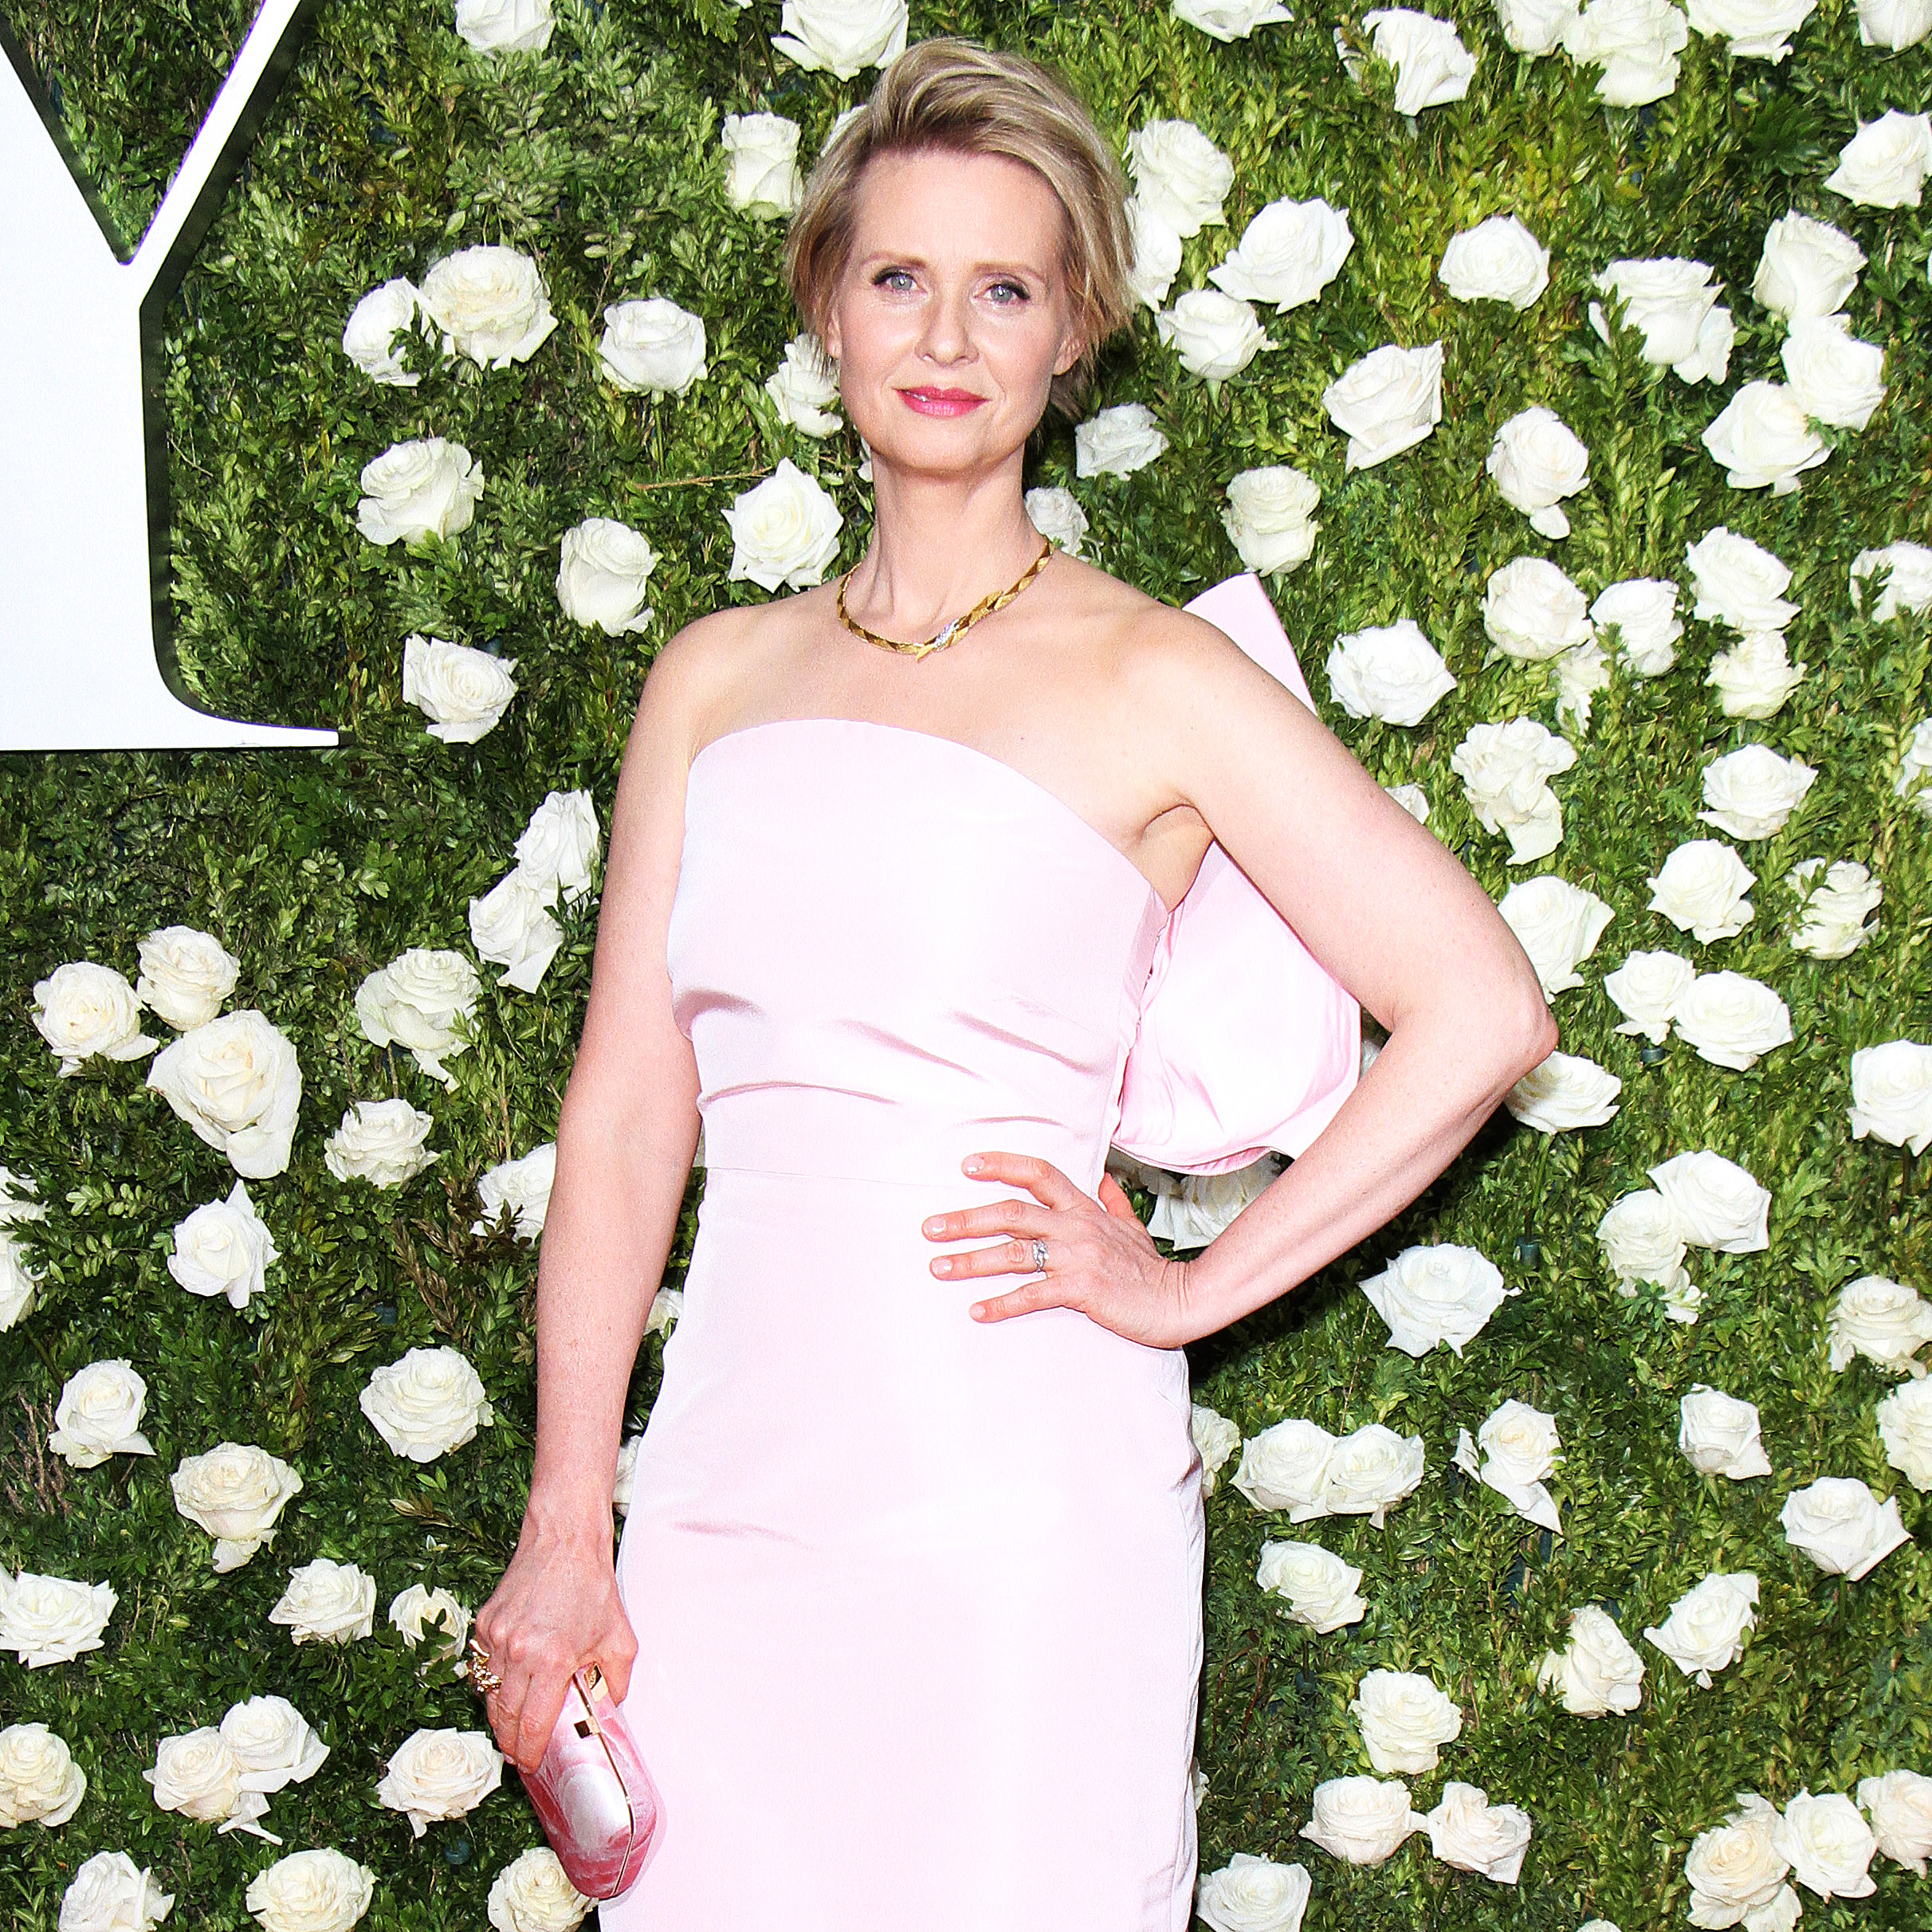 Cynthia Nixon 25 Things You Don't Know About Me